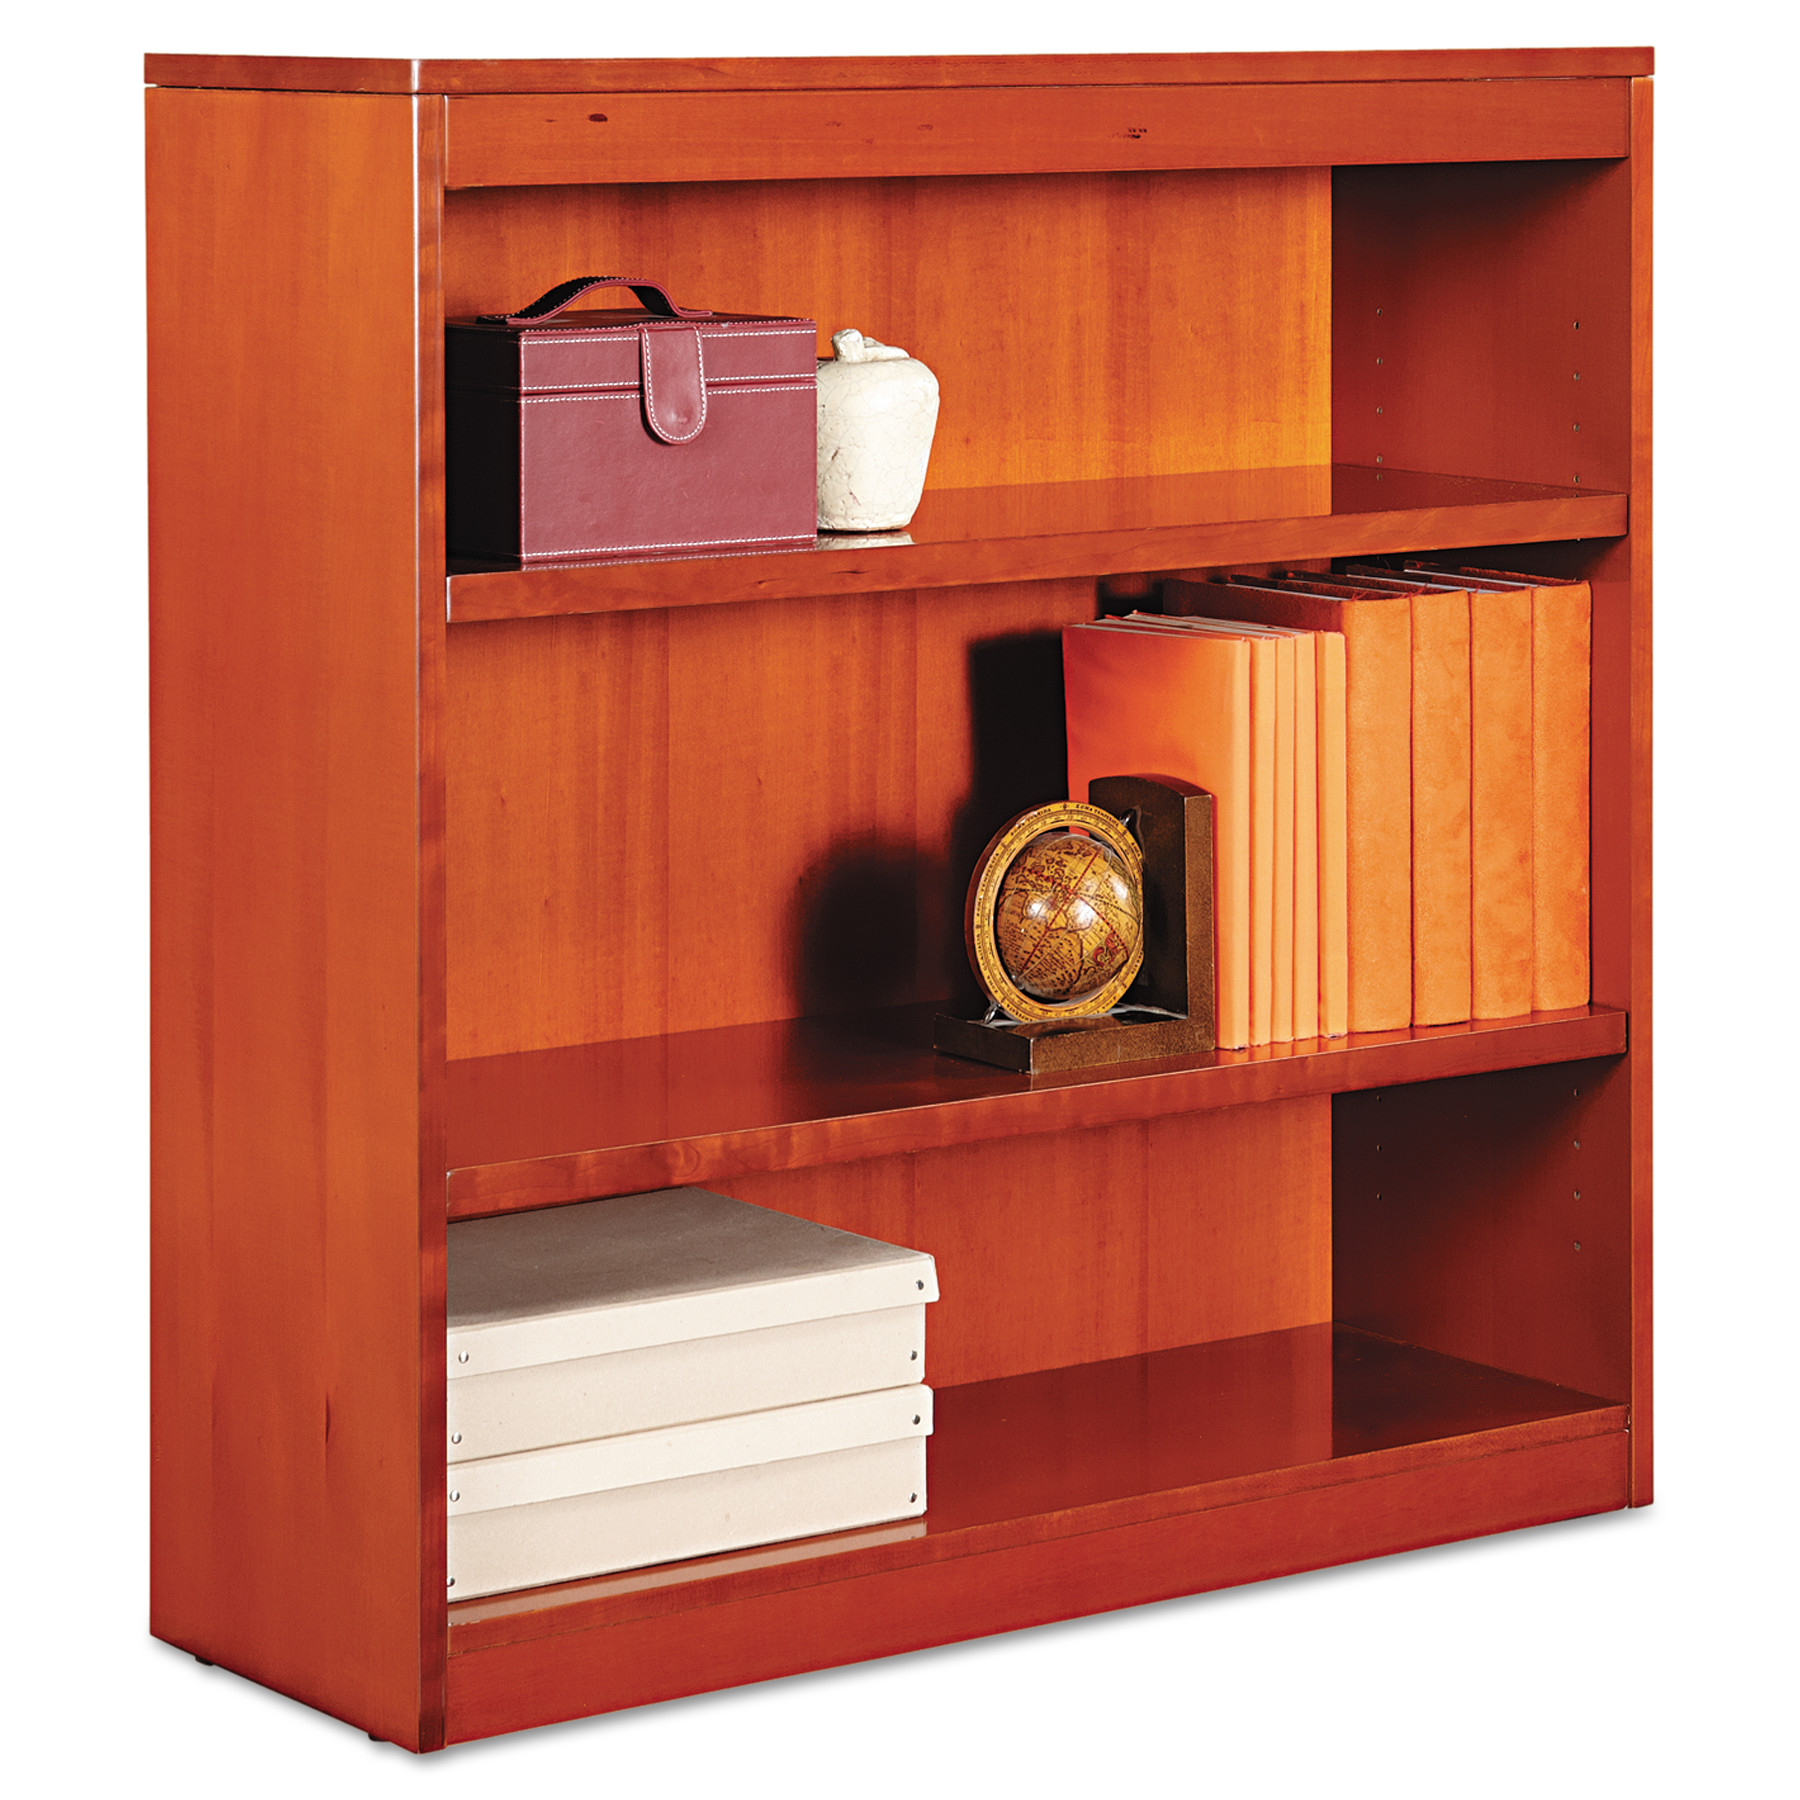 Alera Square Corner Wood Veneer Bookcase, Three-Shelf, 35-5 8 x 11-3 4 x 36, Mahogany by ALERA